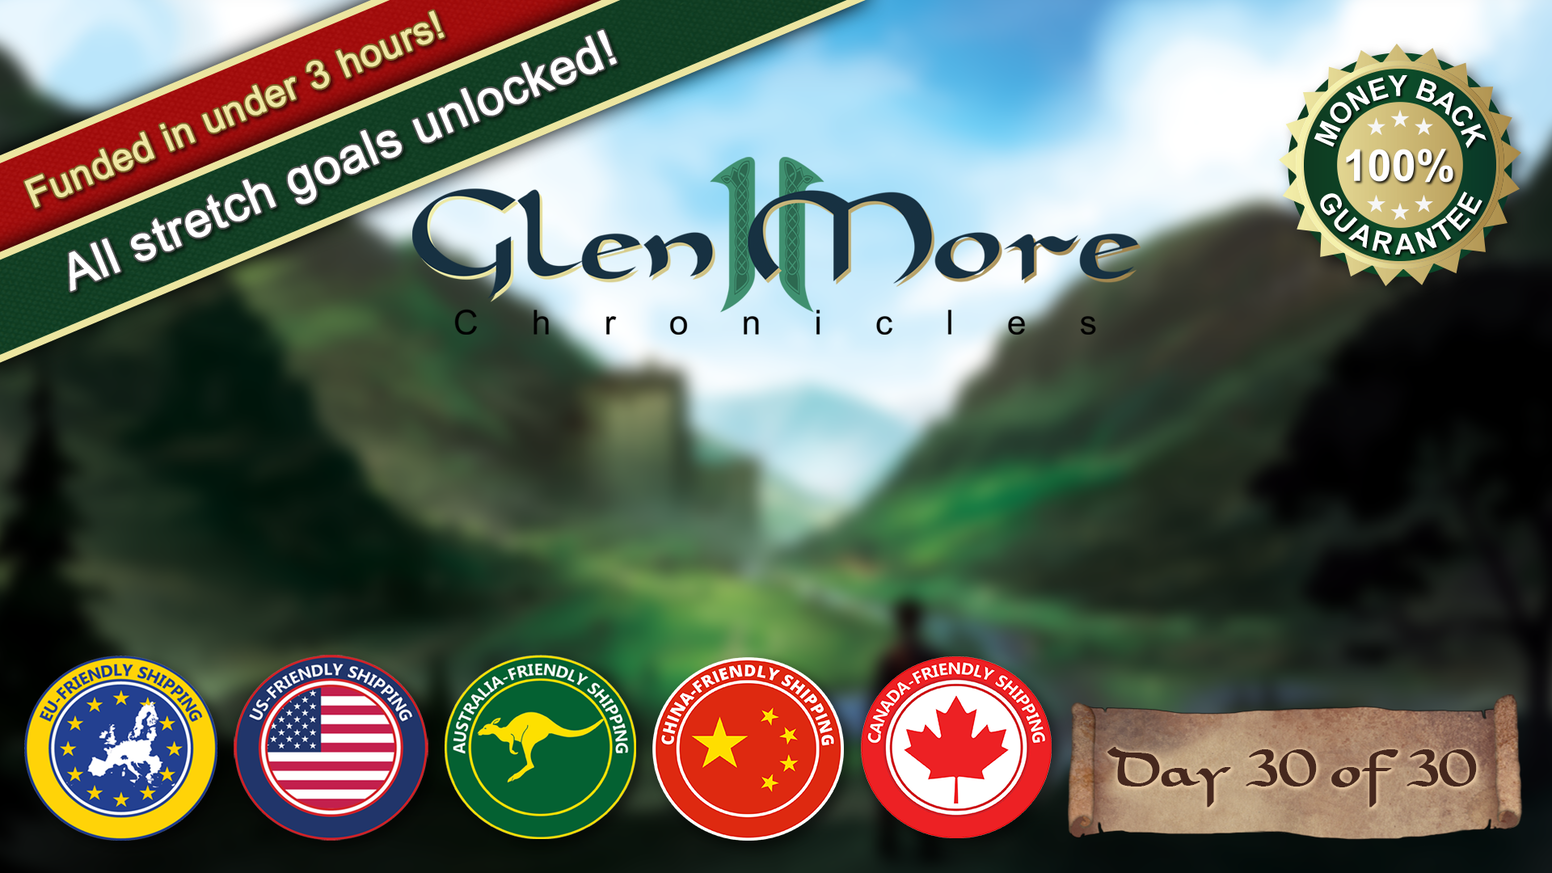 Glen More II: Chronicles is Matthias Cramer's new tile-laying game of epic proportions, with top-notch material and great replayability